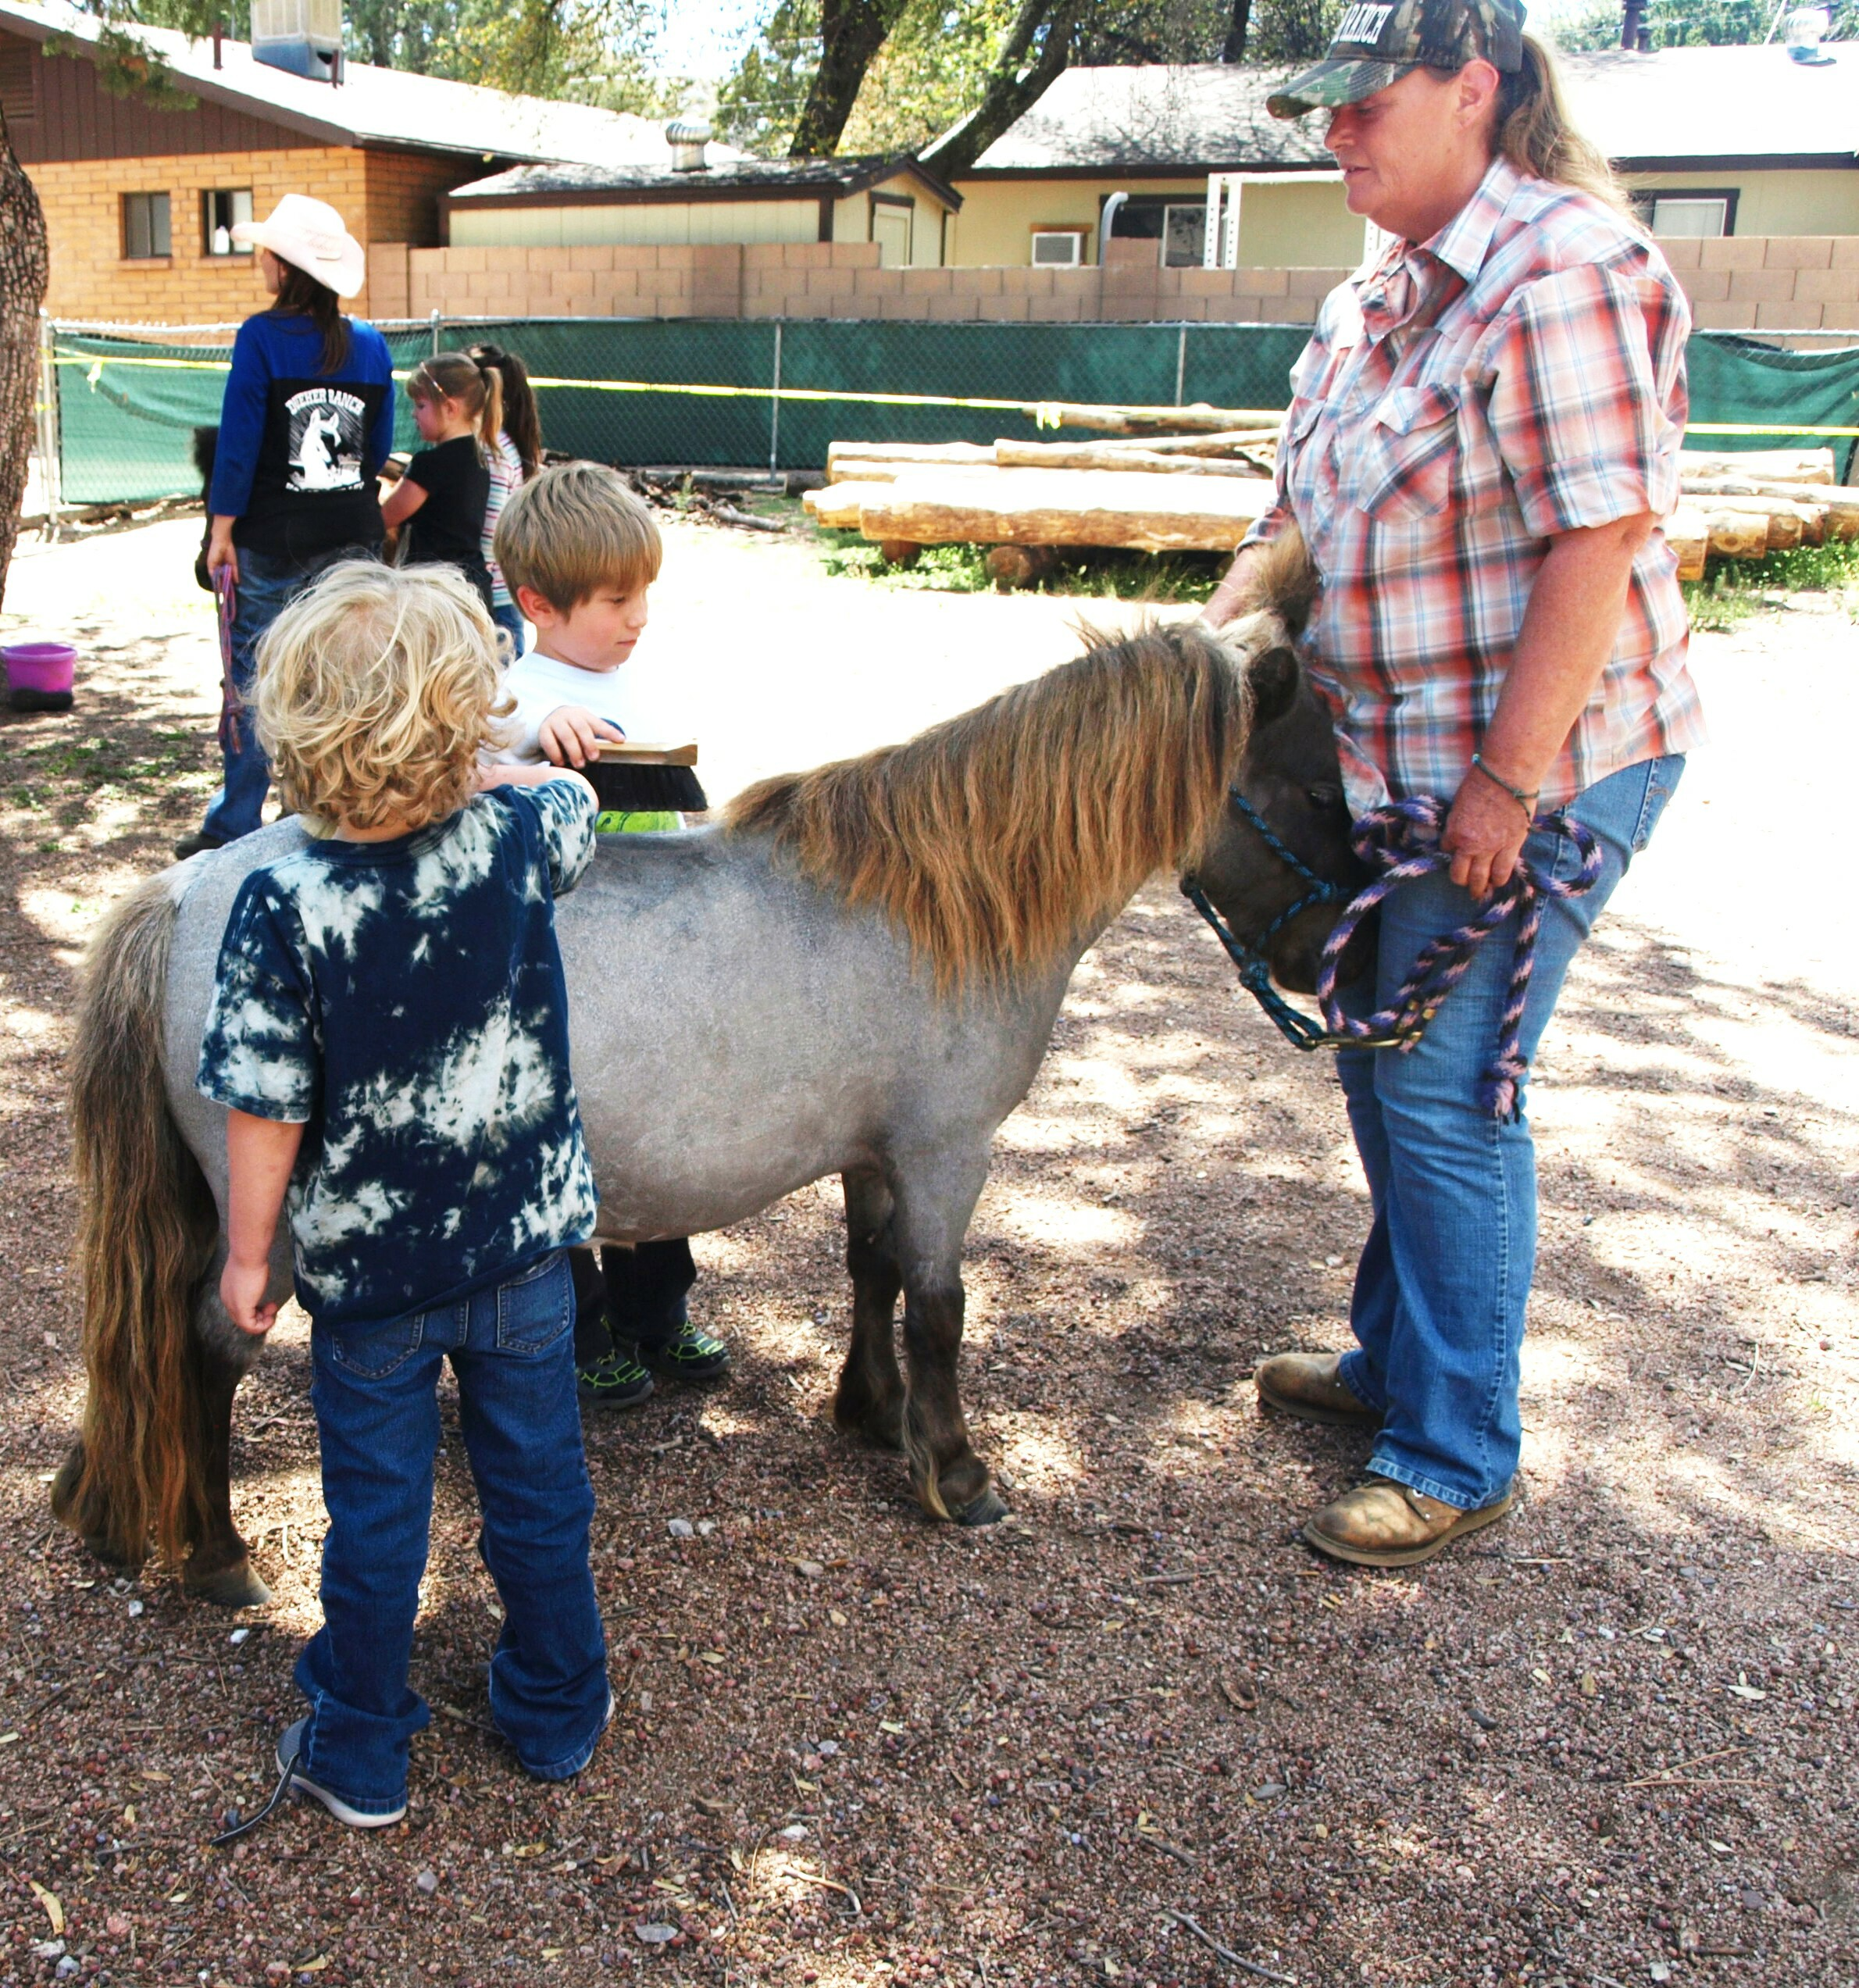 5.Boys grooming Gracie, a miniature horse at Payson Community Kids.jpg